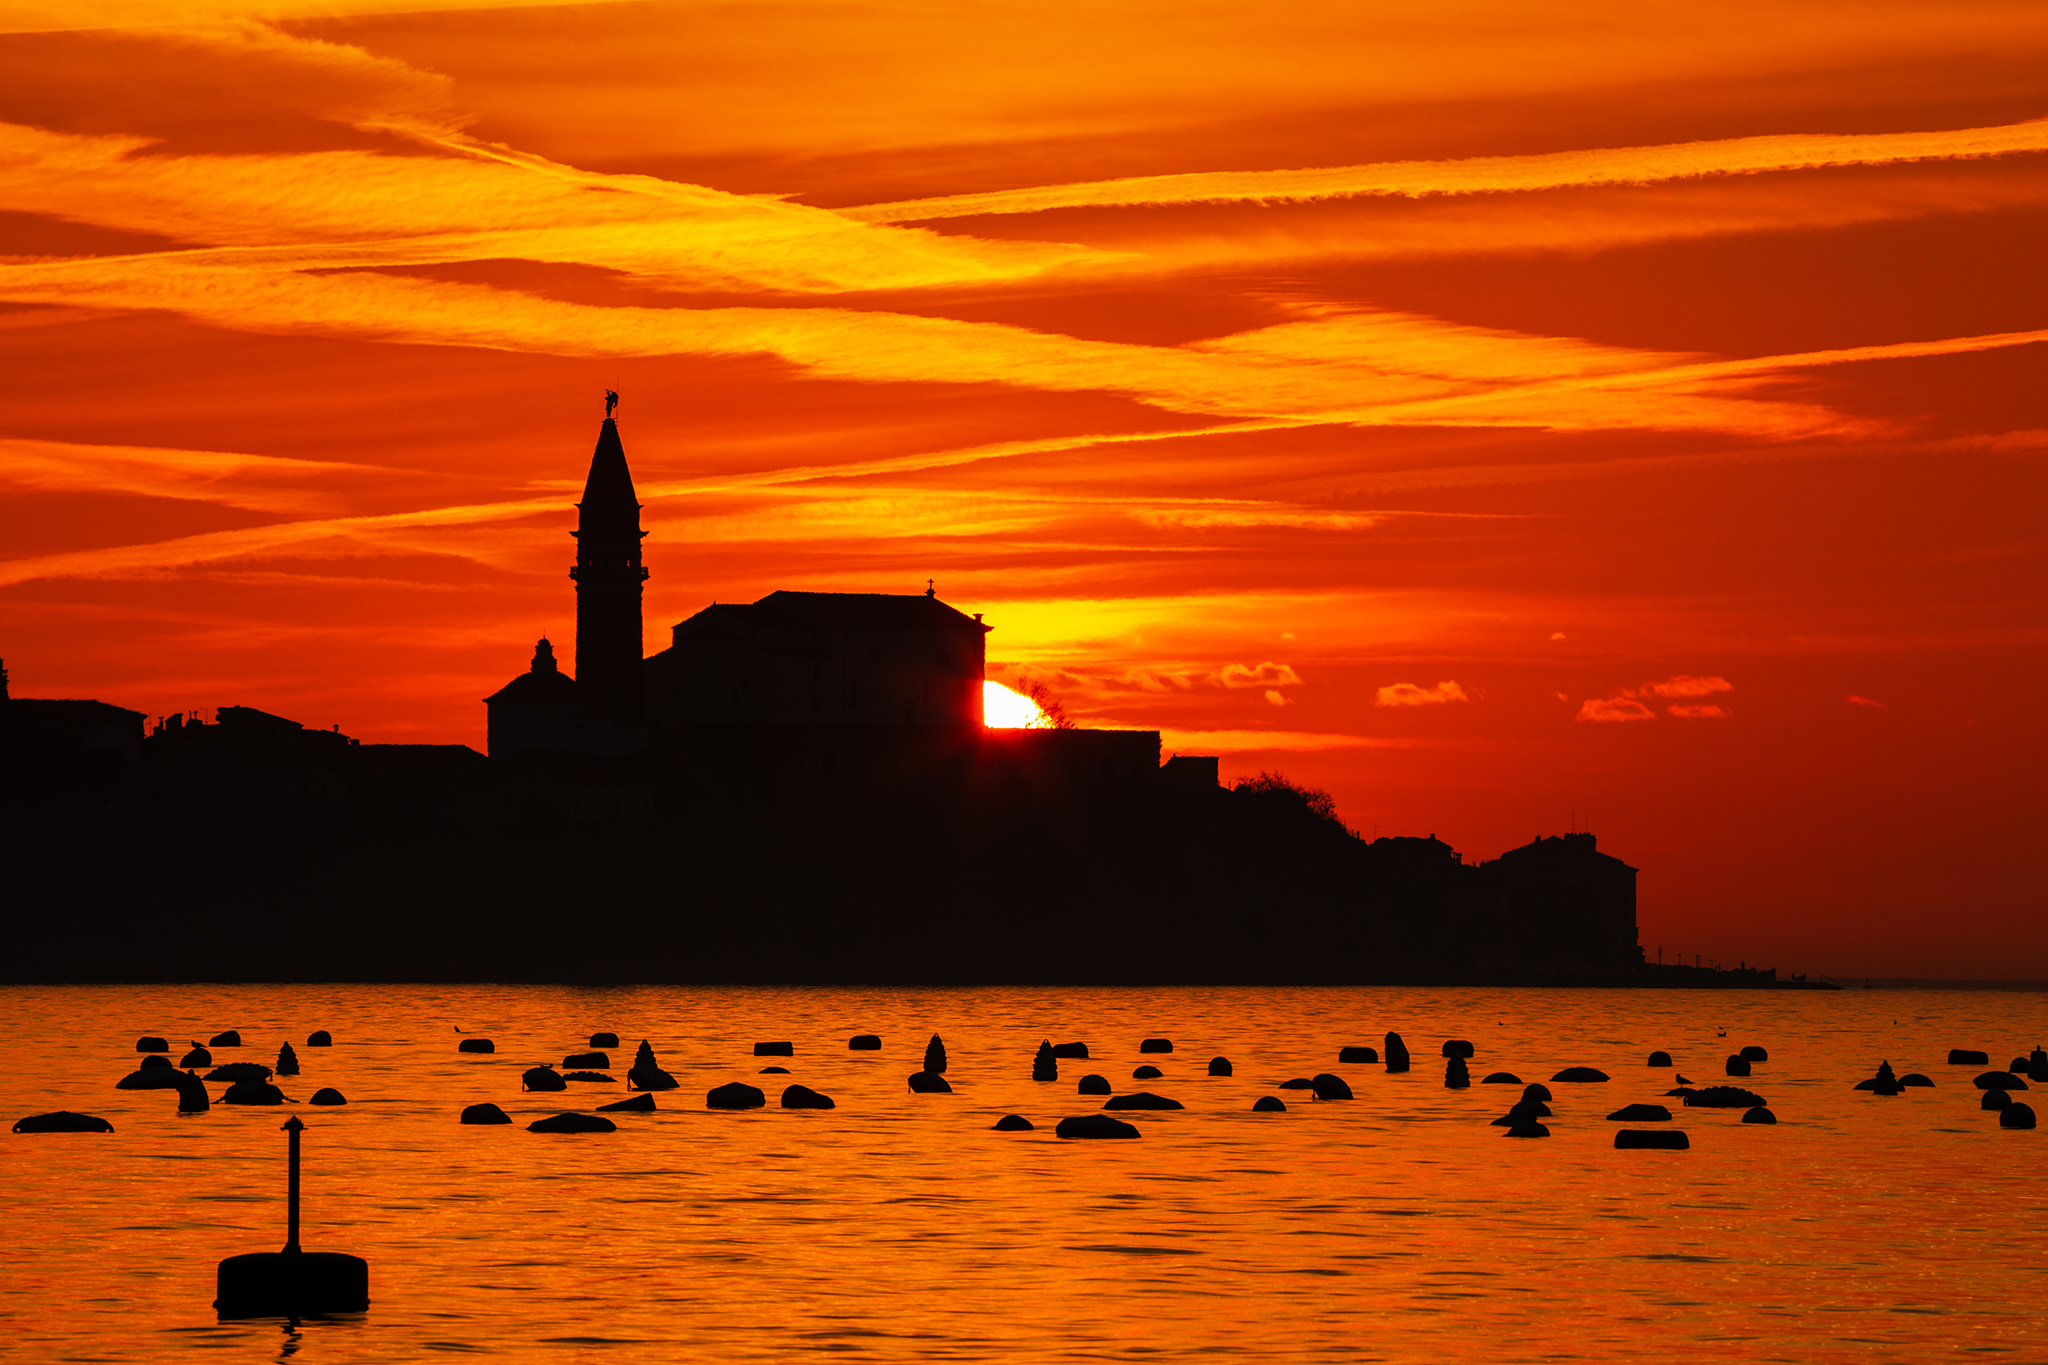 View of Saint George's Parish Church in Piran at sunset, seen from Strunjan, on the Adriatic Coast in Slovenia.